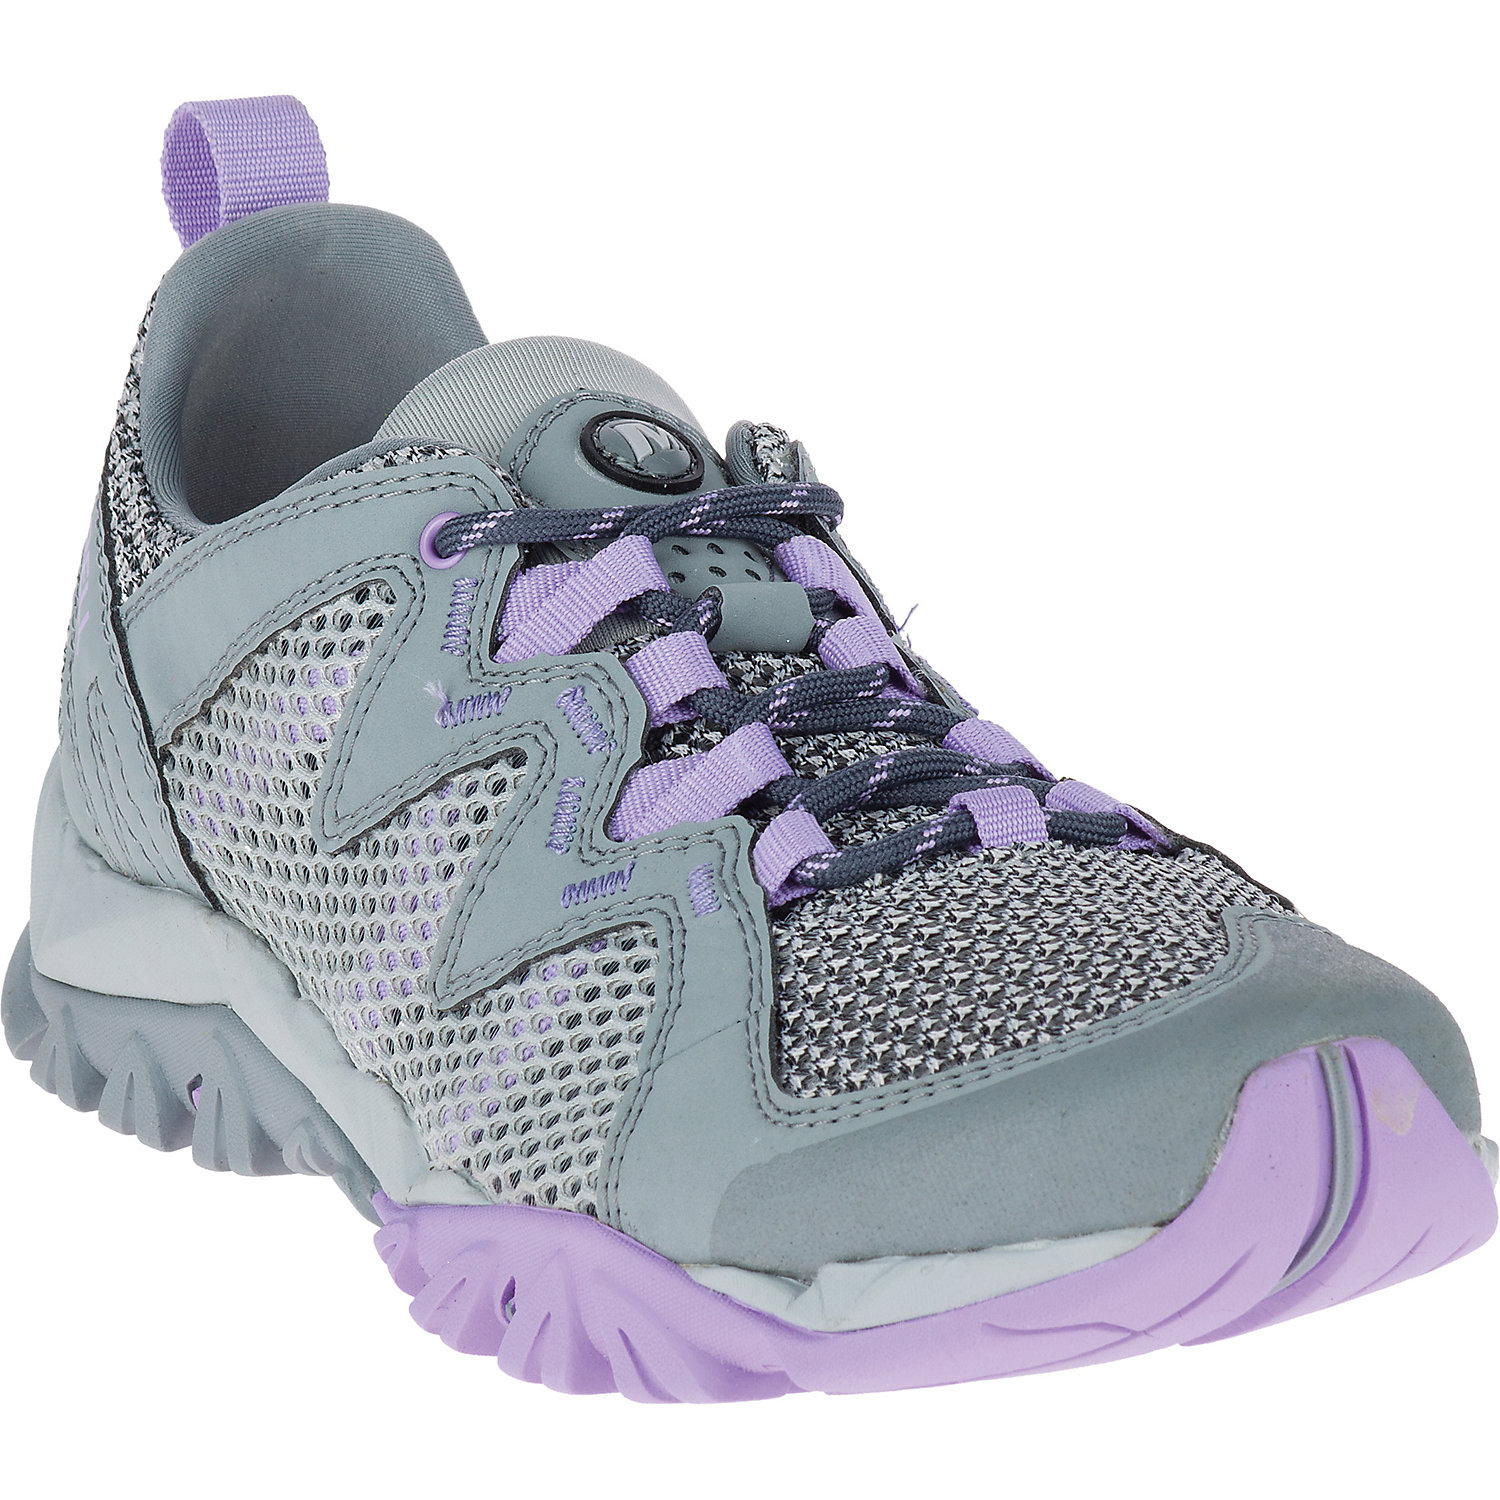 clear and distinctive where can i buy street price Merrell Women's Tetrex Rapid Crest Shoe